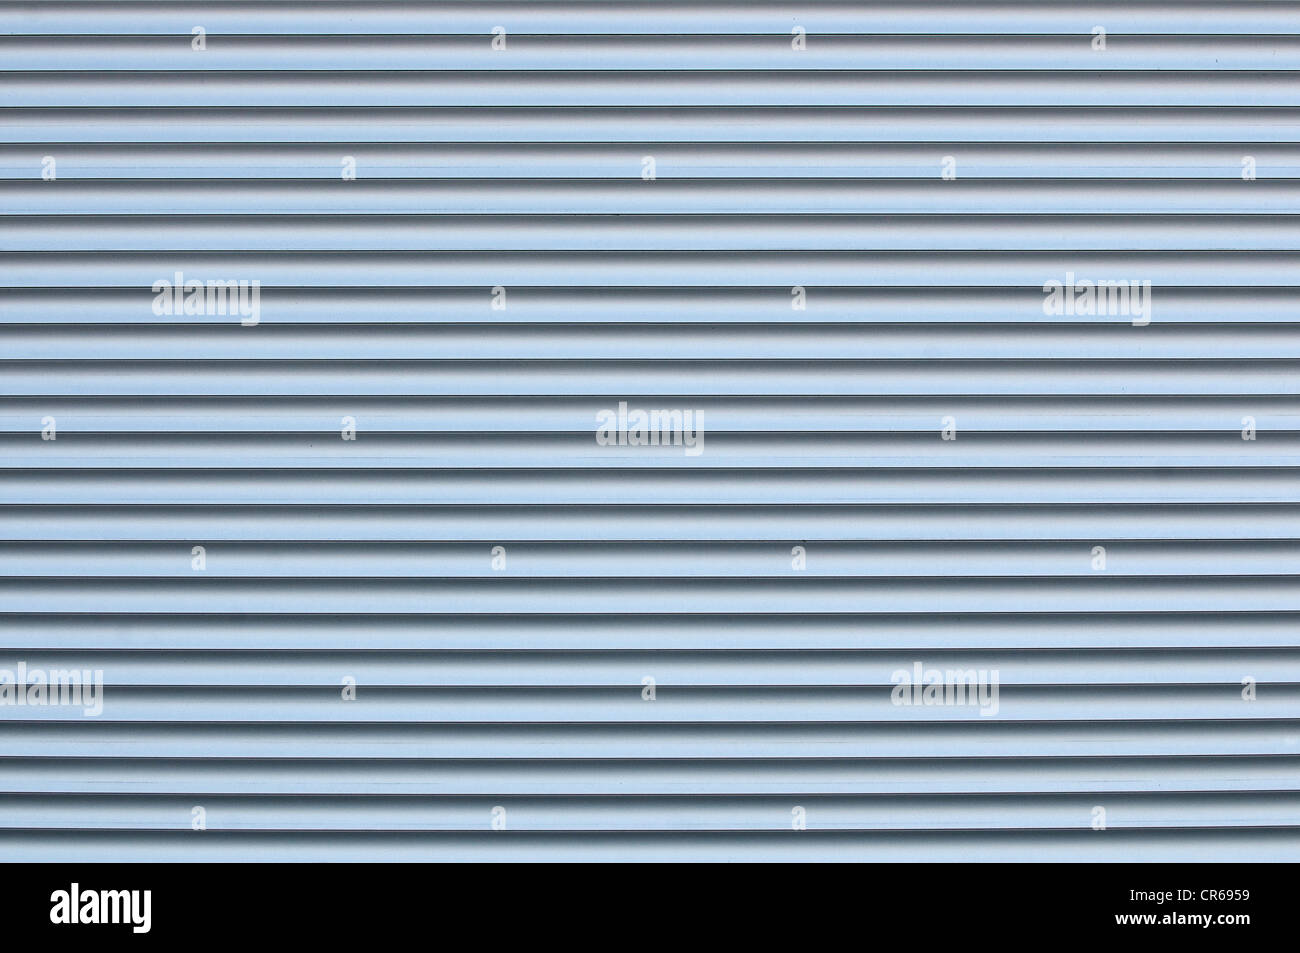 Metal blinds, graphic - Stock Image